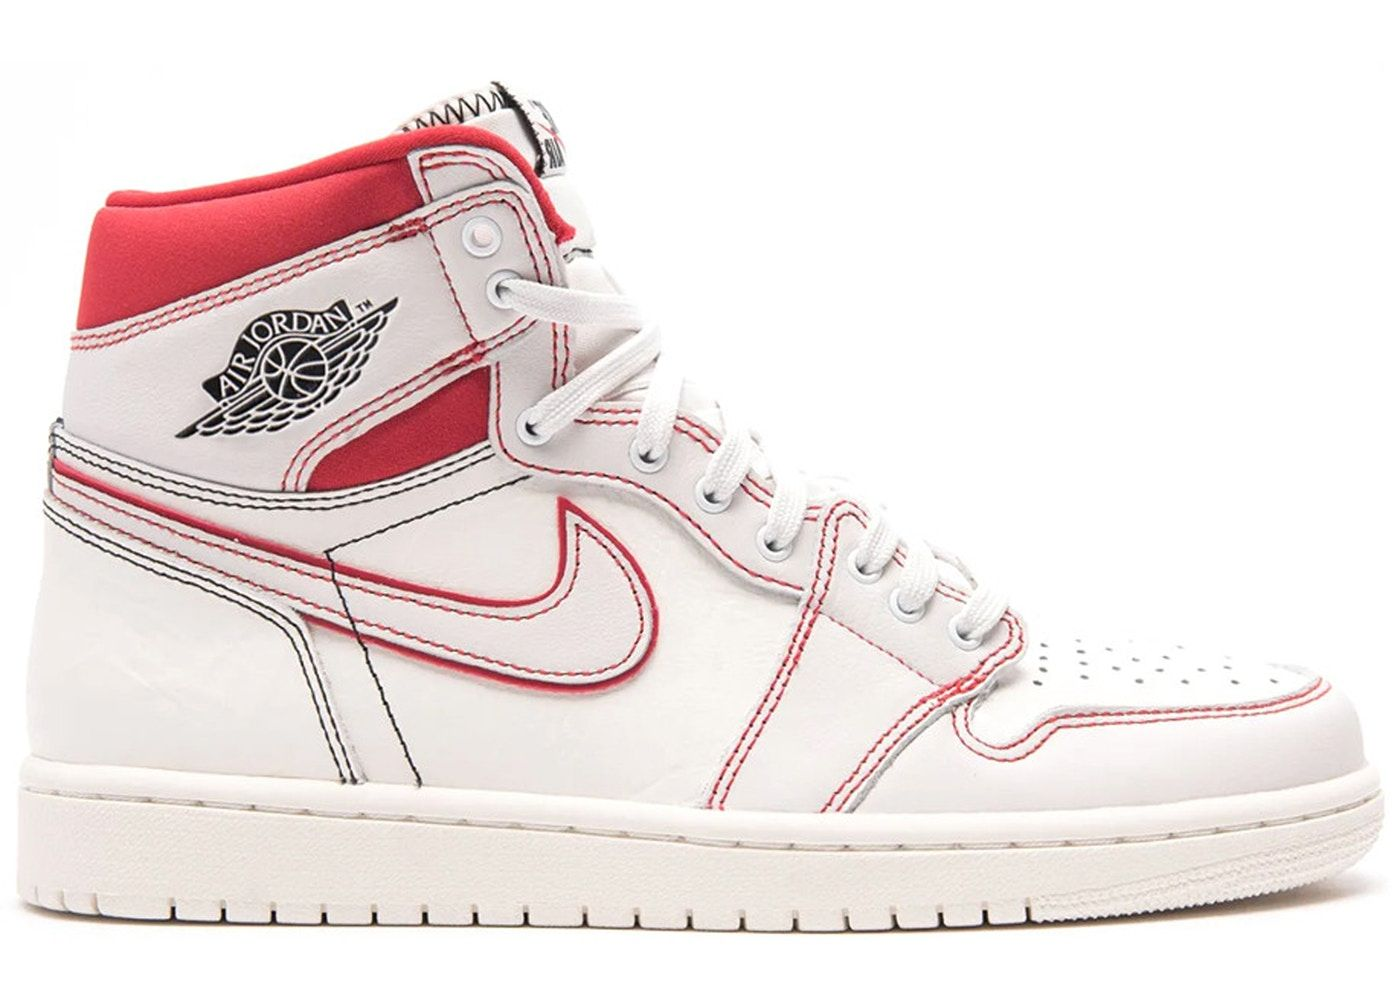 c243f38d Check out the Jordan 1 Retro High Phantom Gym Red available on StockX